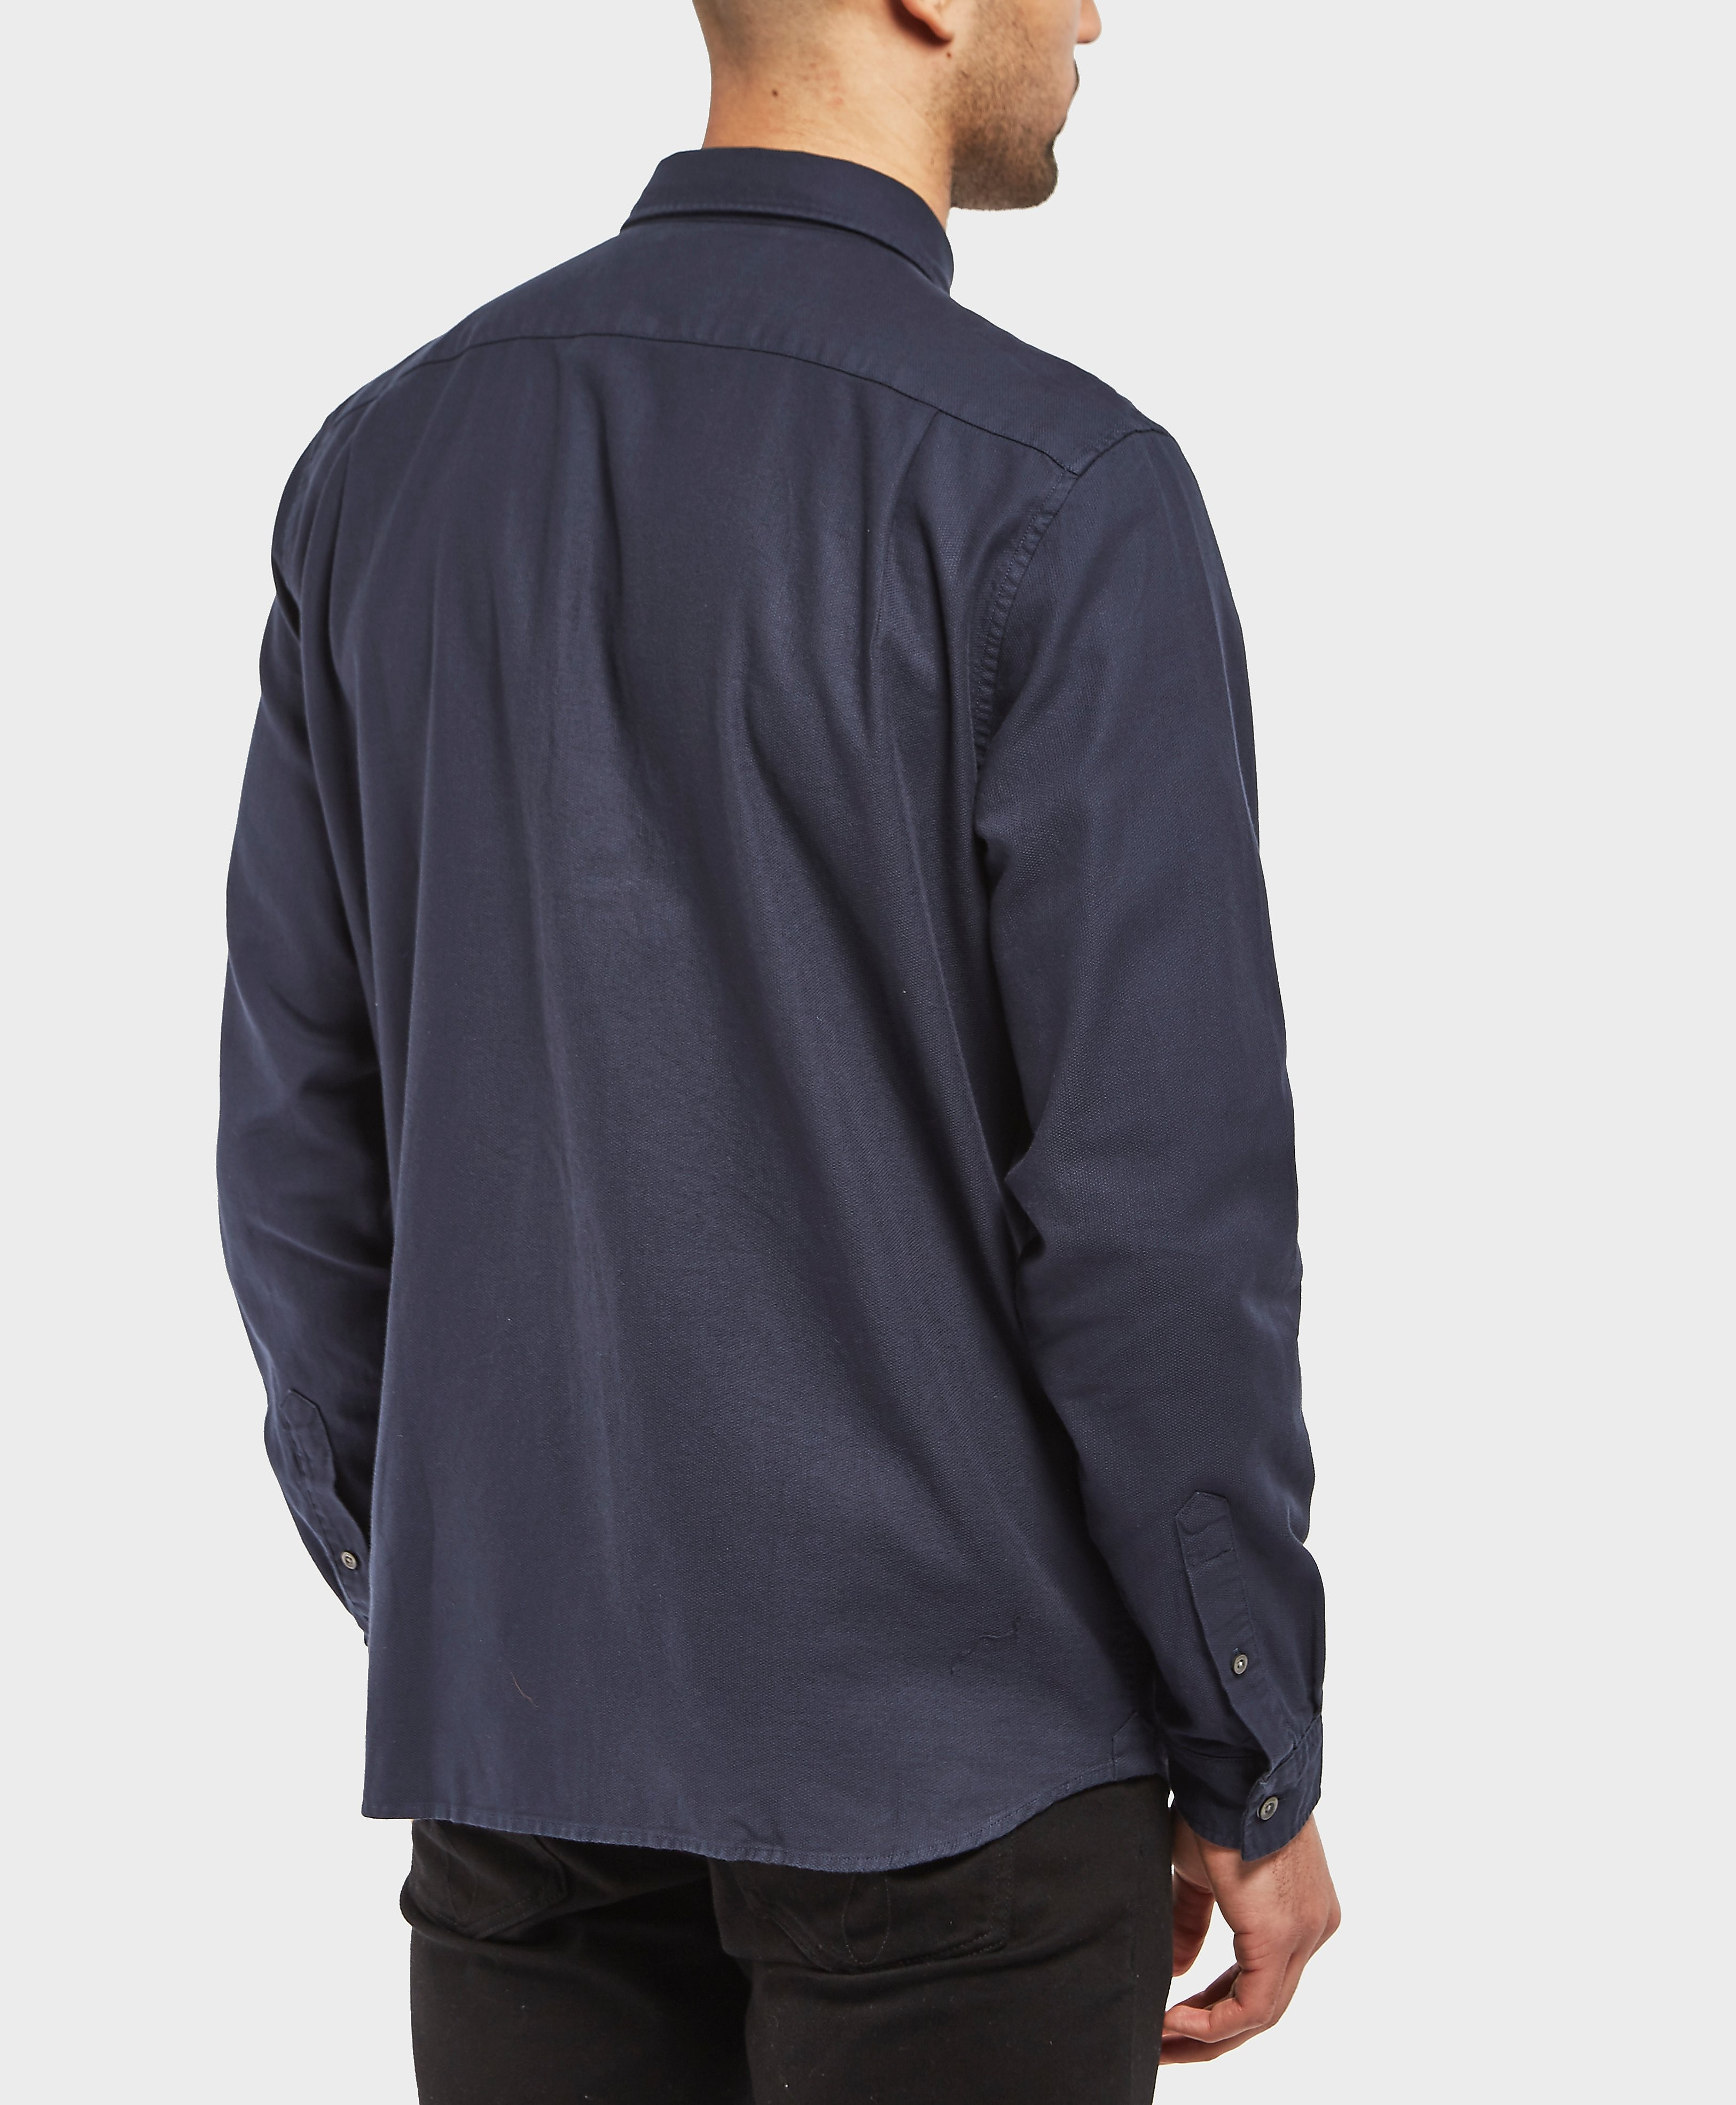 Lacoste Pique Long Sleeve Shirt